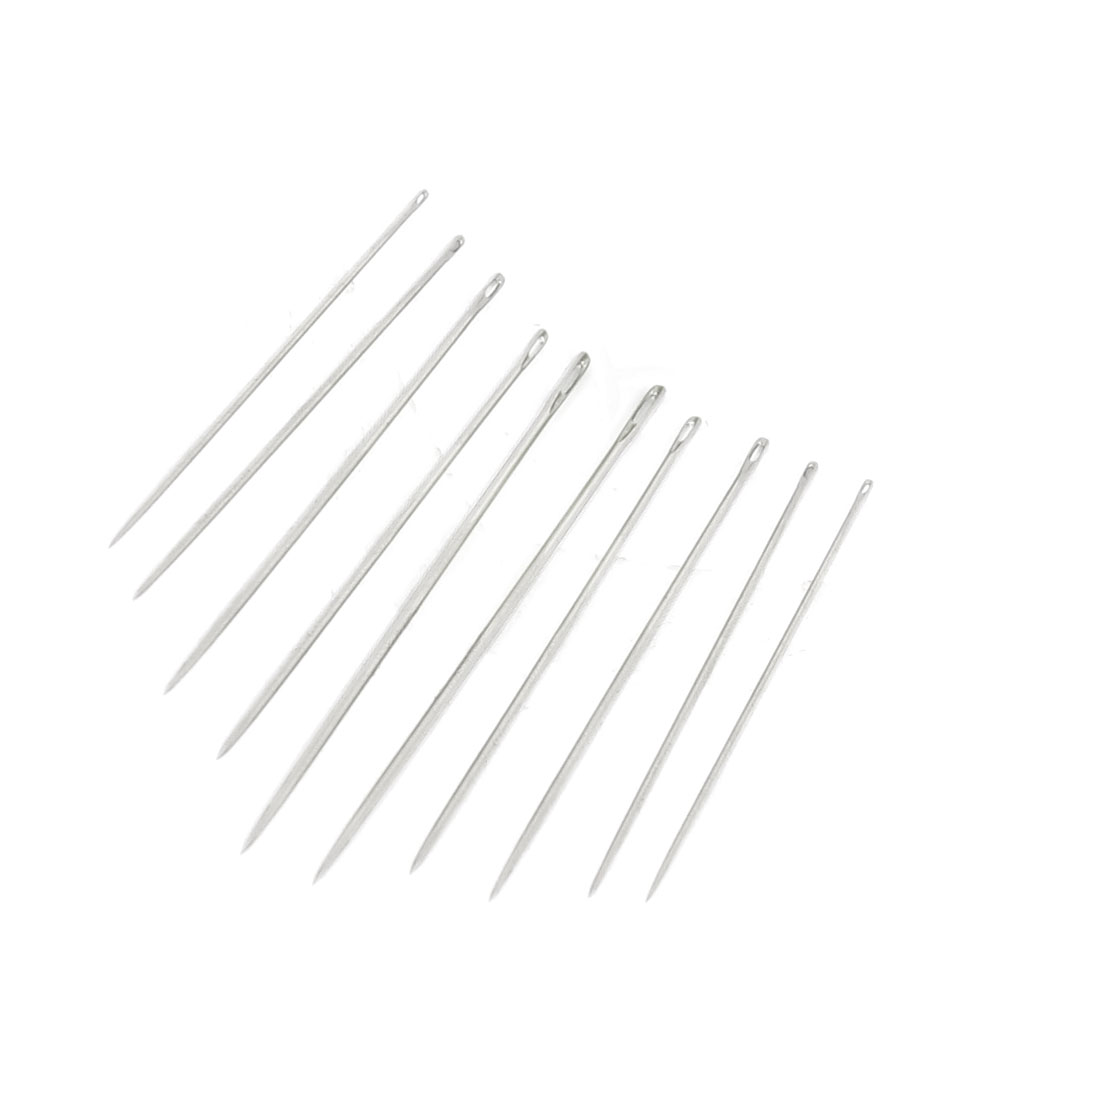 10 in 1 Metal Pointed Tip Clothes Stitching Sewing Needles